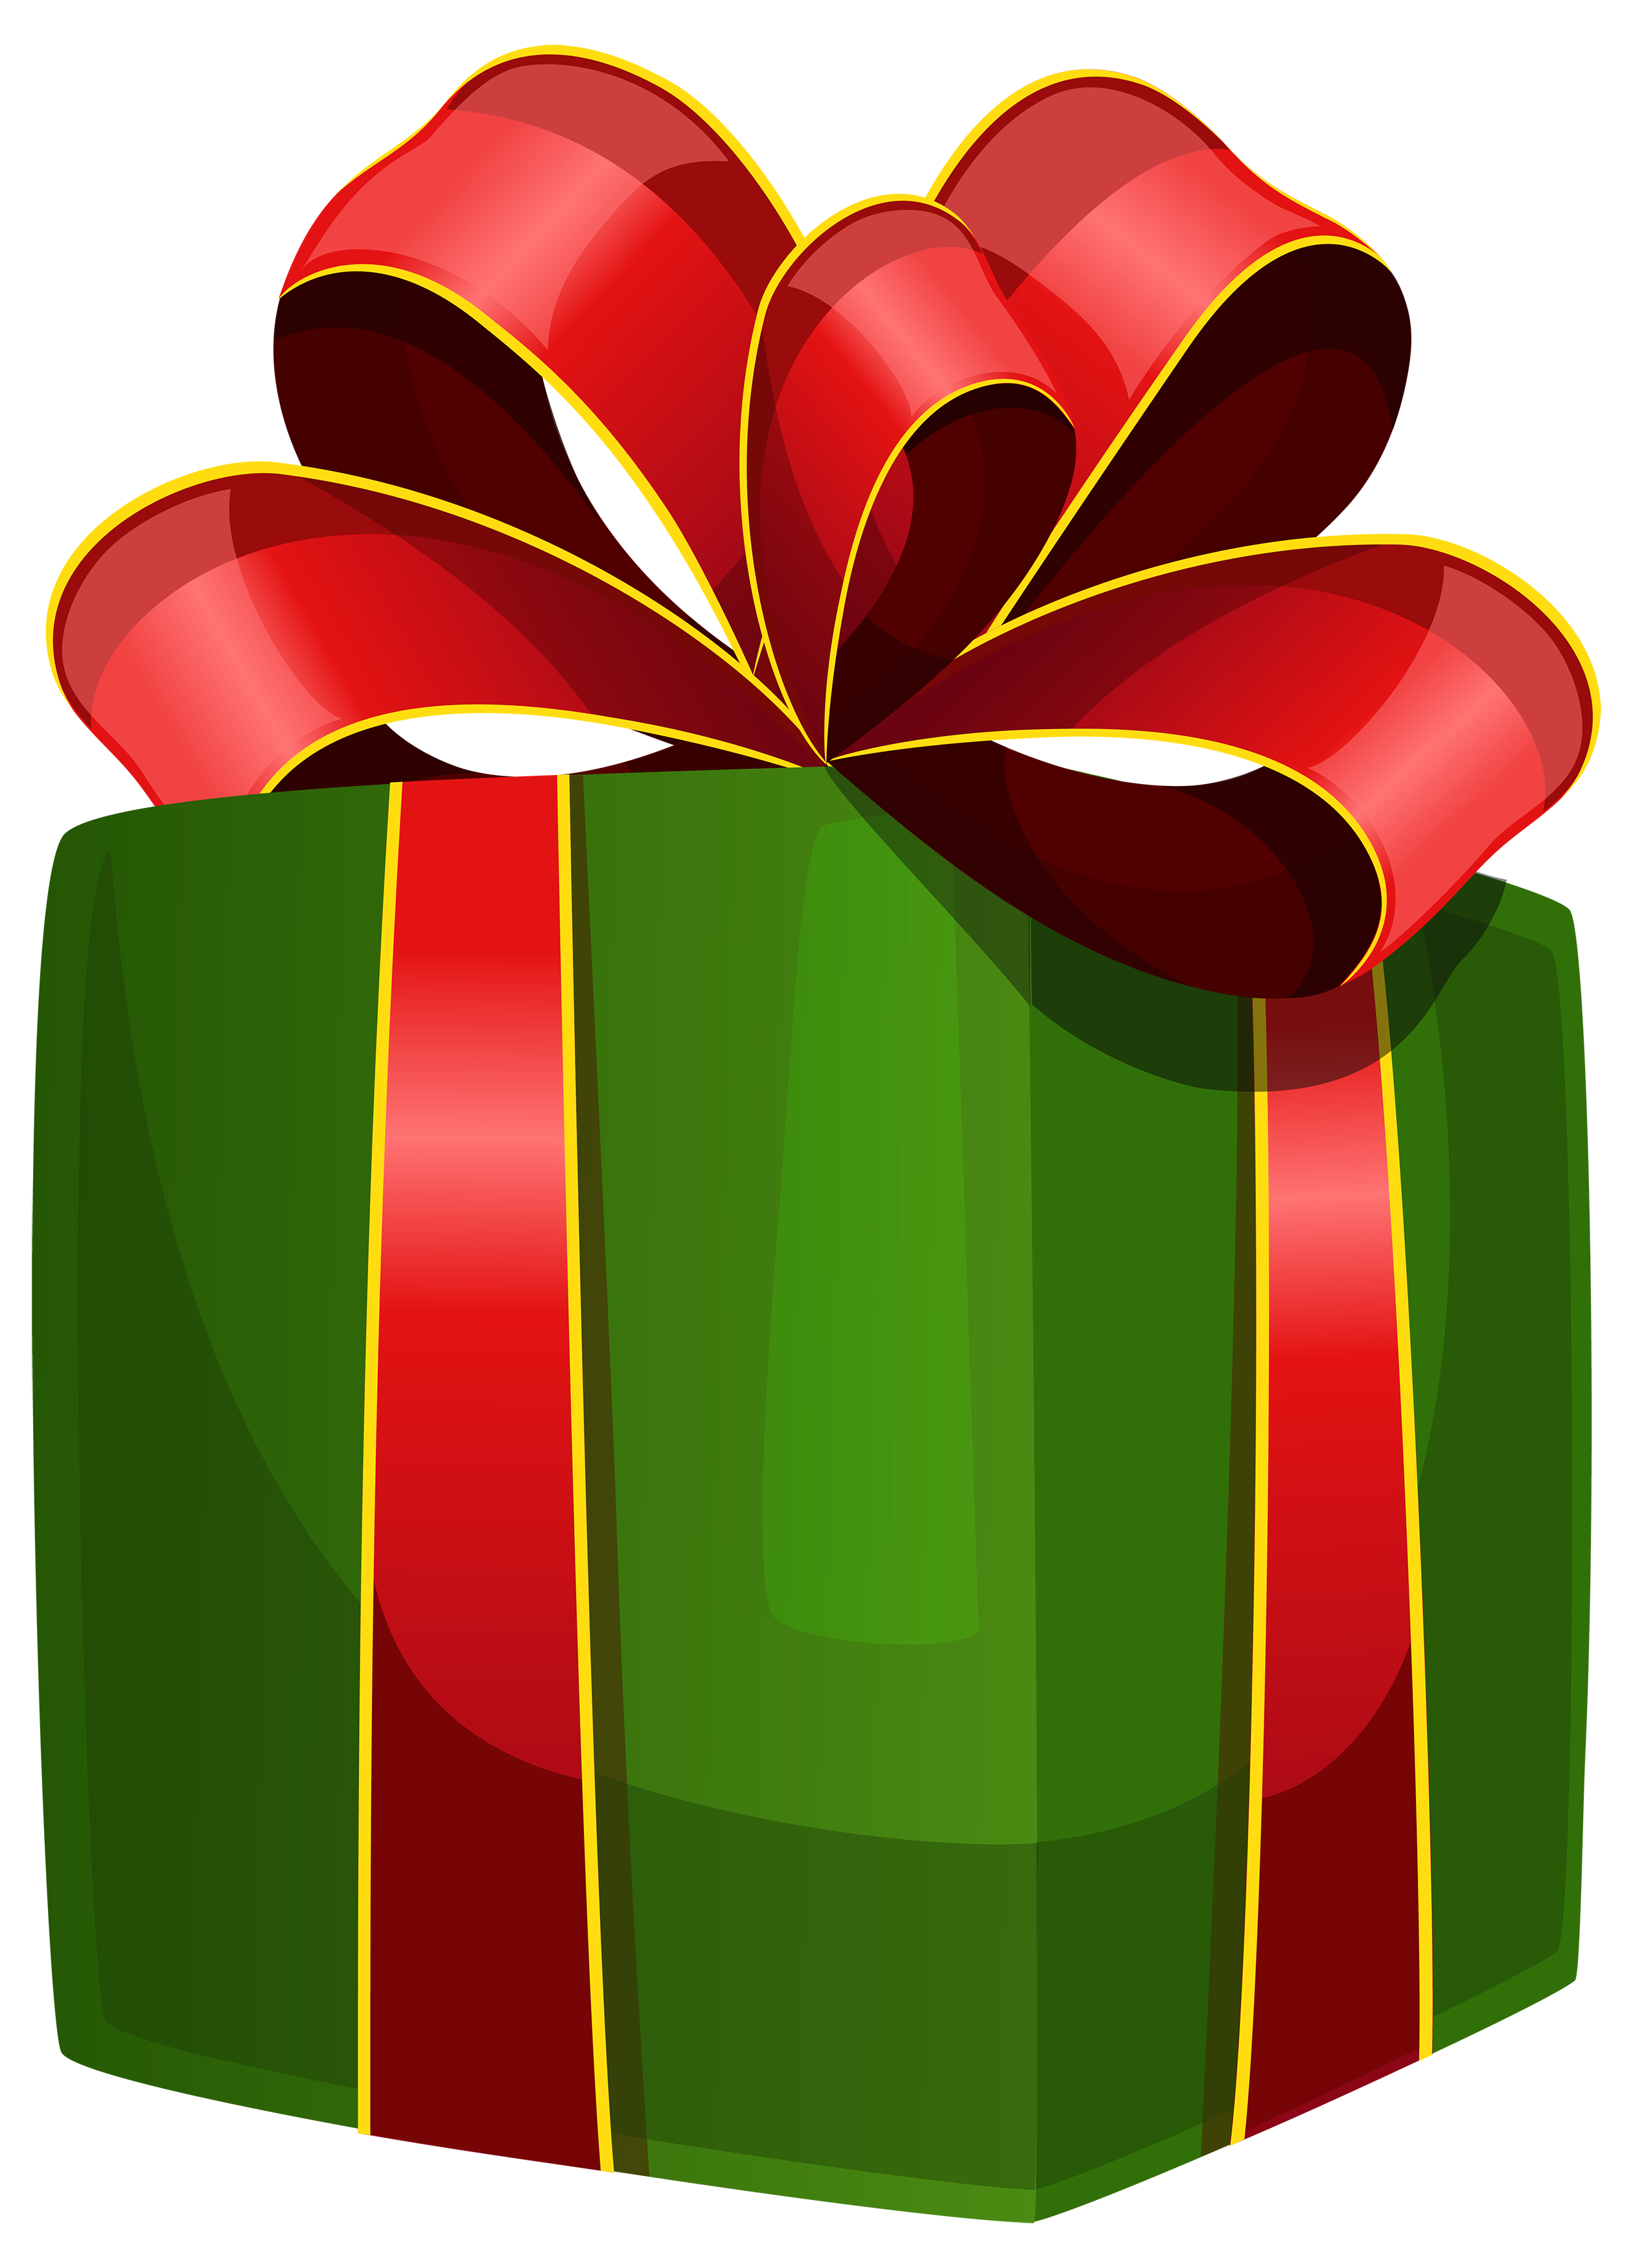 Box clipart quality. Green gift png best